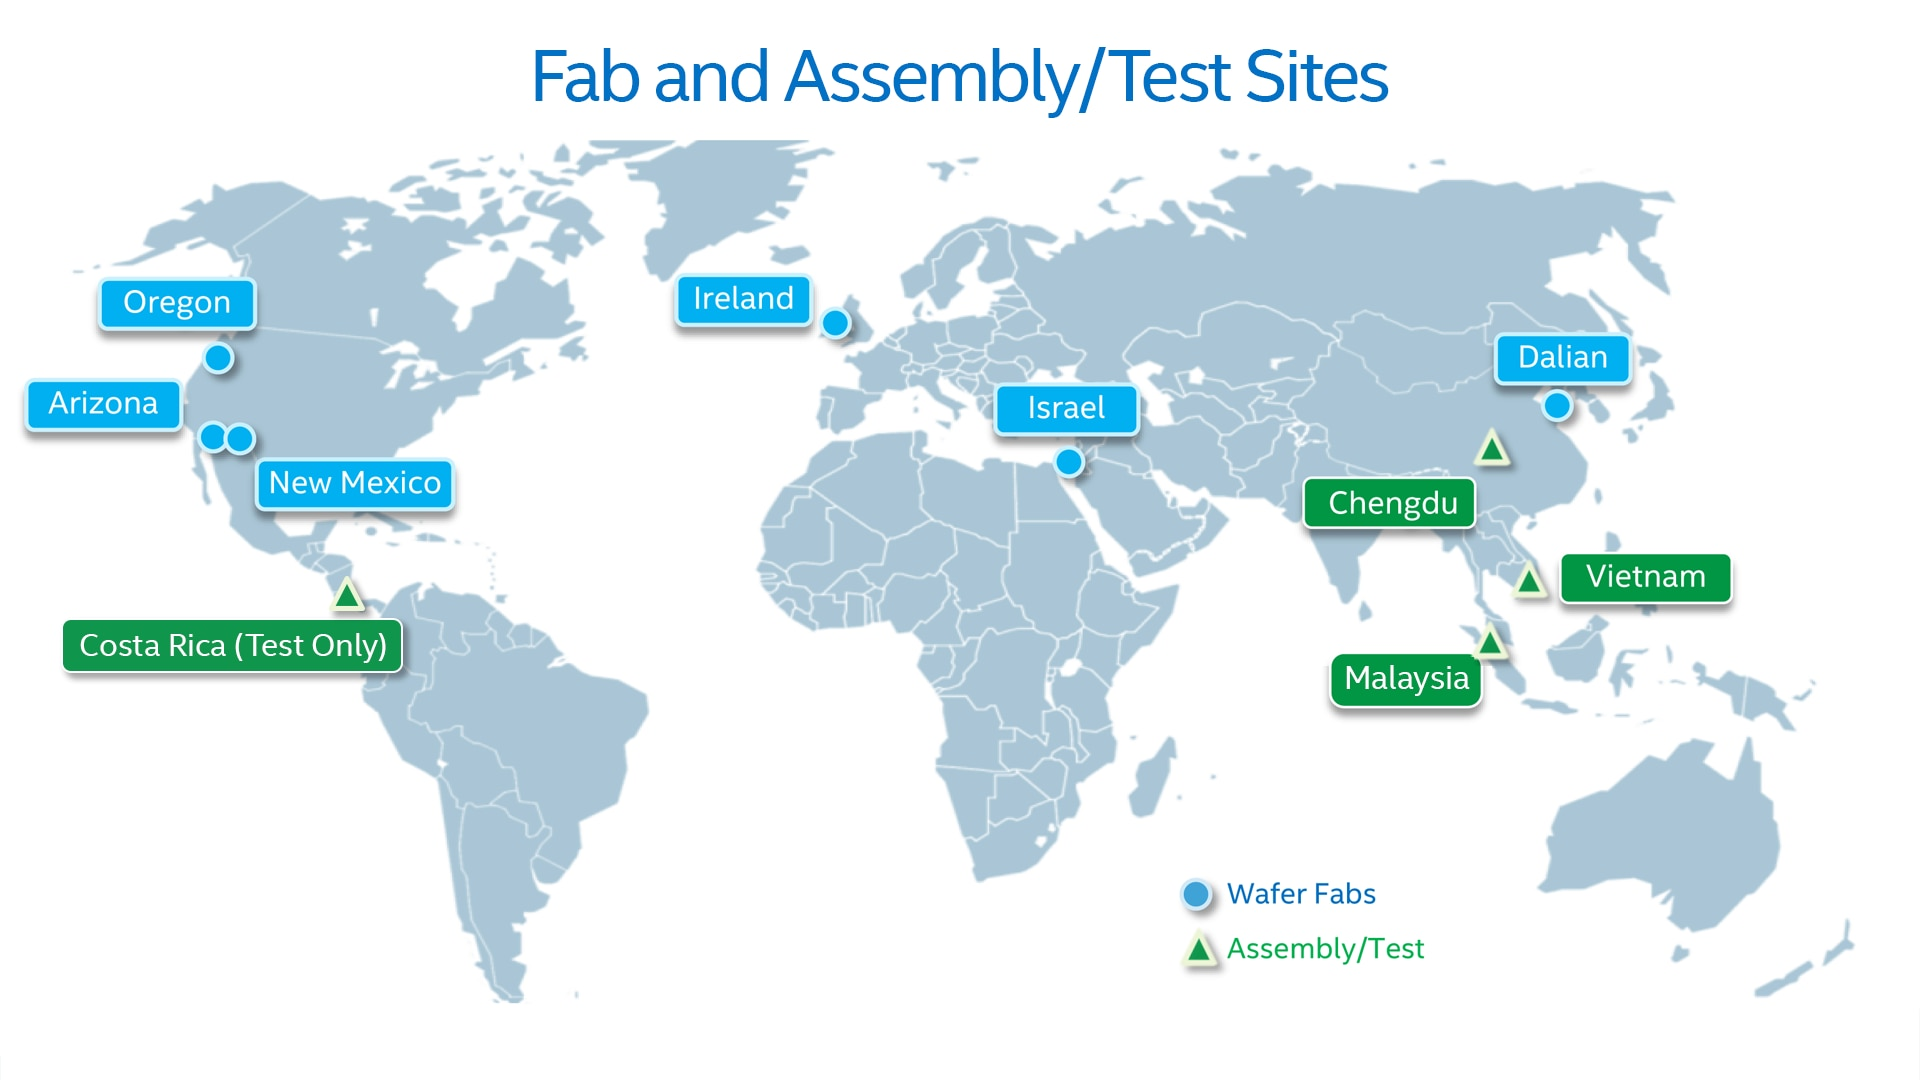 Fab and Assembly Test Sites Map